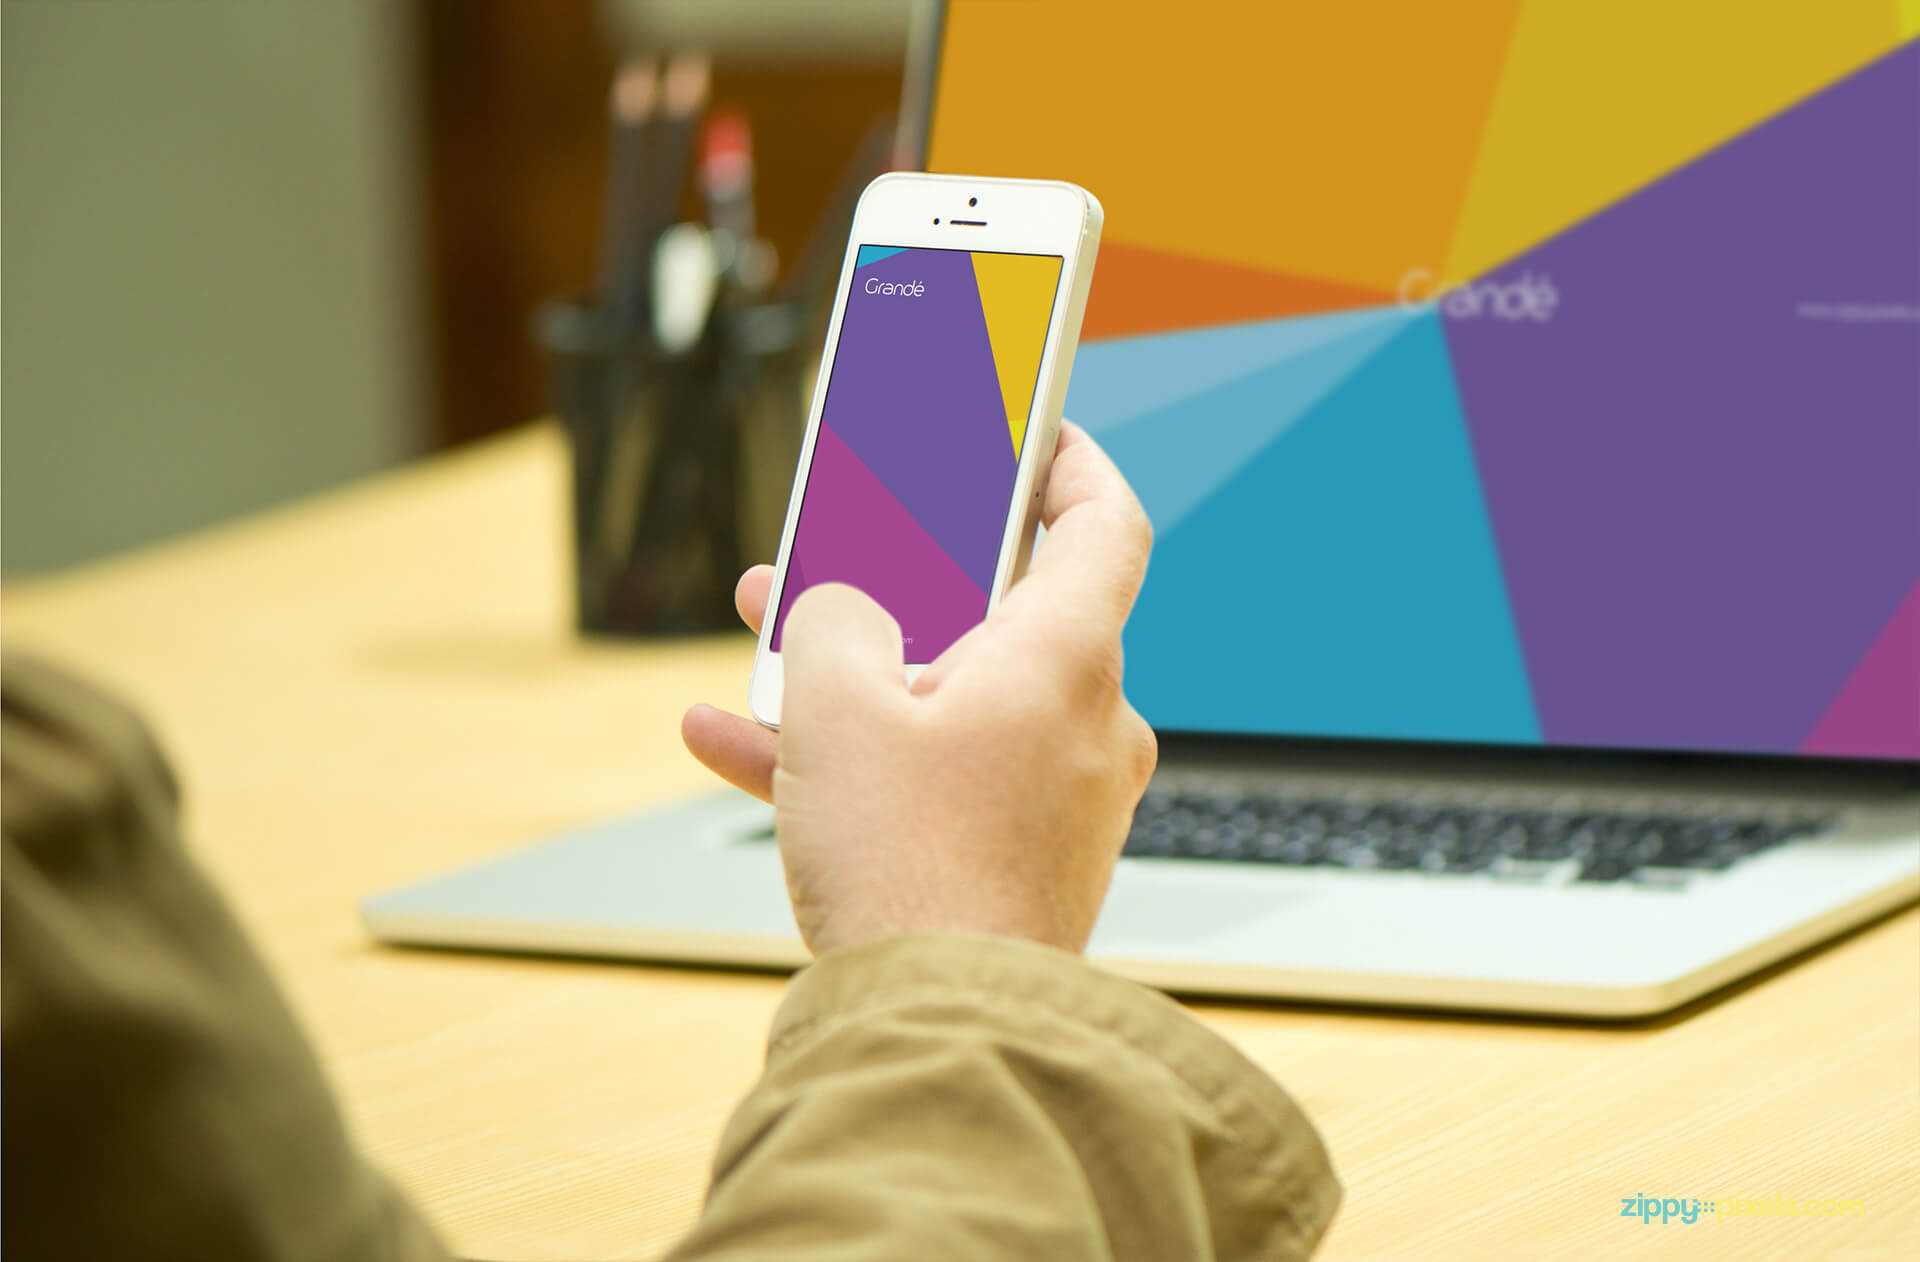 Device Mockup of iPhone Held in a Hand with a Macbook Pro in Background